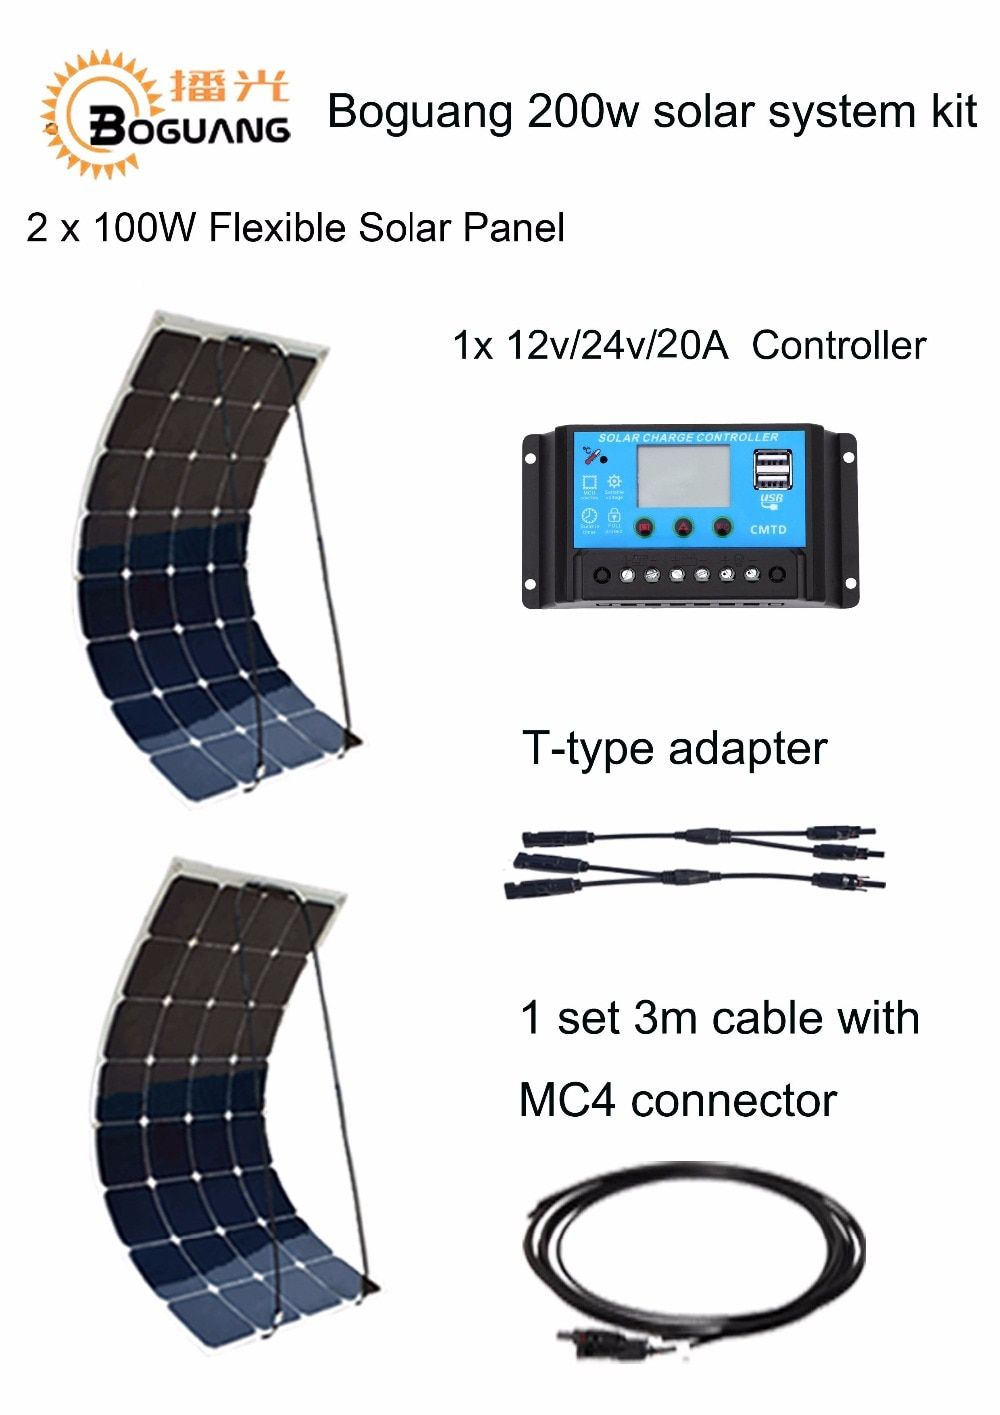 Flexible Solar panel 2pcs 100W cable 12V or 24V 20A solar controller USB output house 200W Kits DIY System solar power station